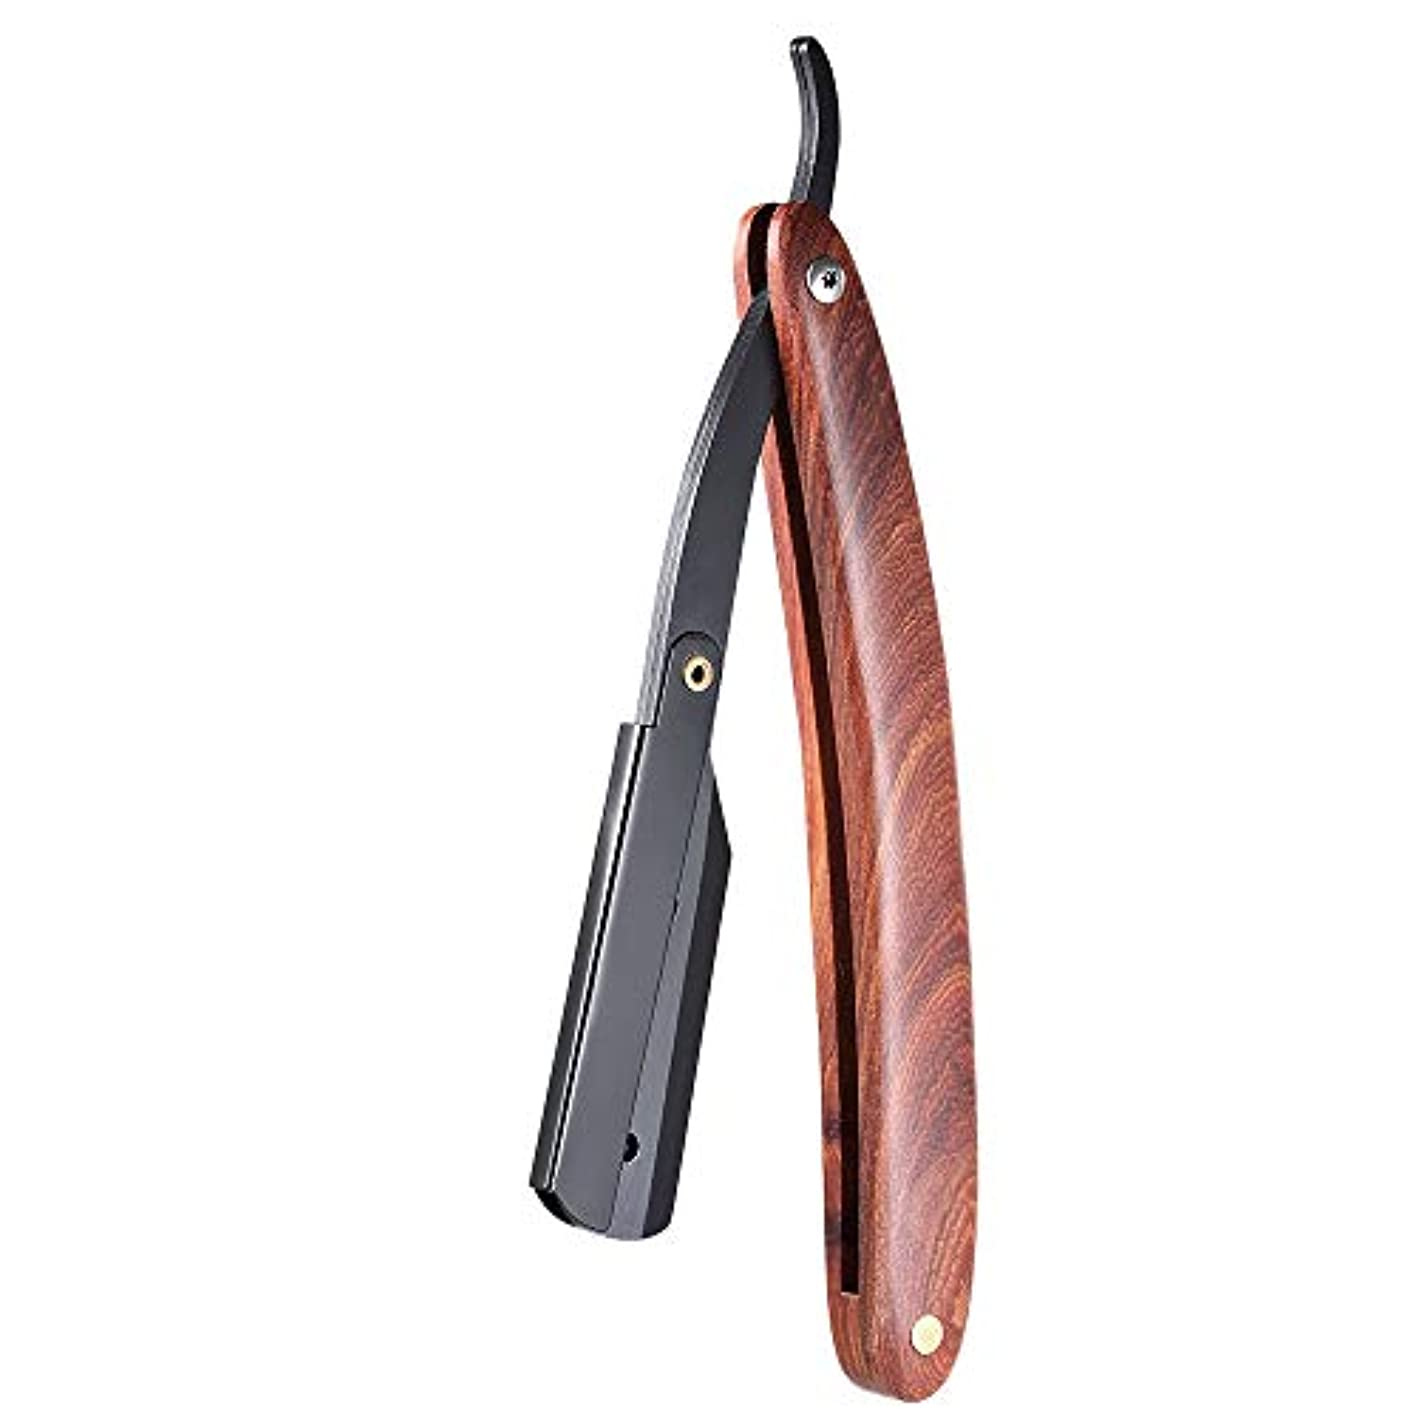 チューブ悪の聞きますMen Shaving Straight Edge Razor Stainless Steel Manual Razor Wooden Handle Folding Shaving Knife Shave Beard Cutter...